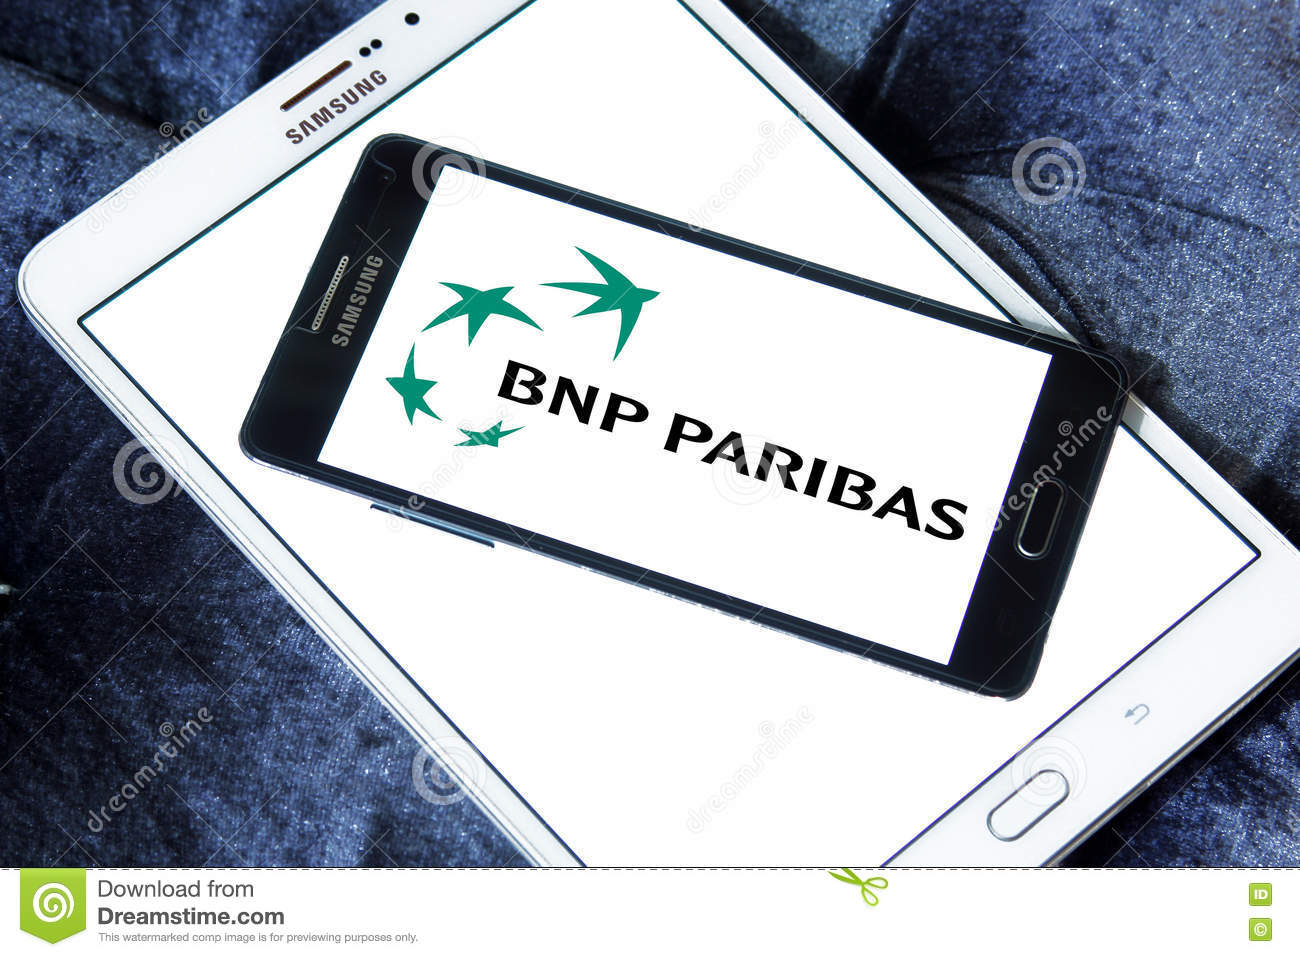 bnp paribas bank logo editorial image 77026288. Black Bedroom Furniture Sets. Home Design Ideas